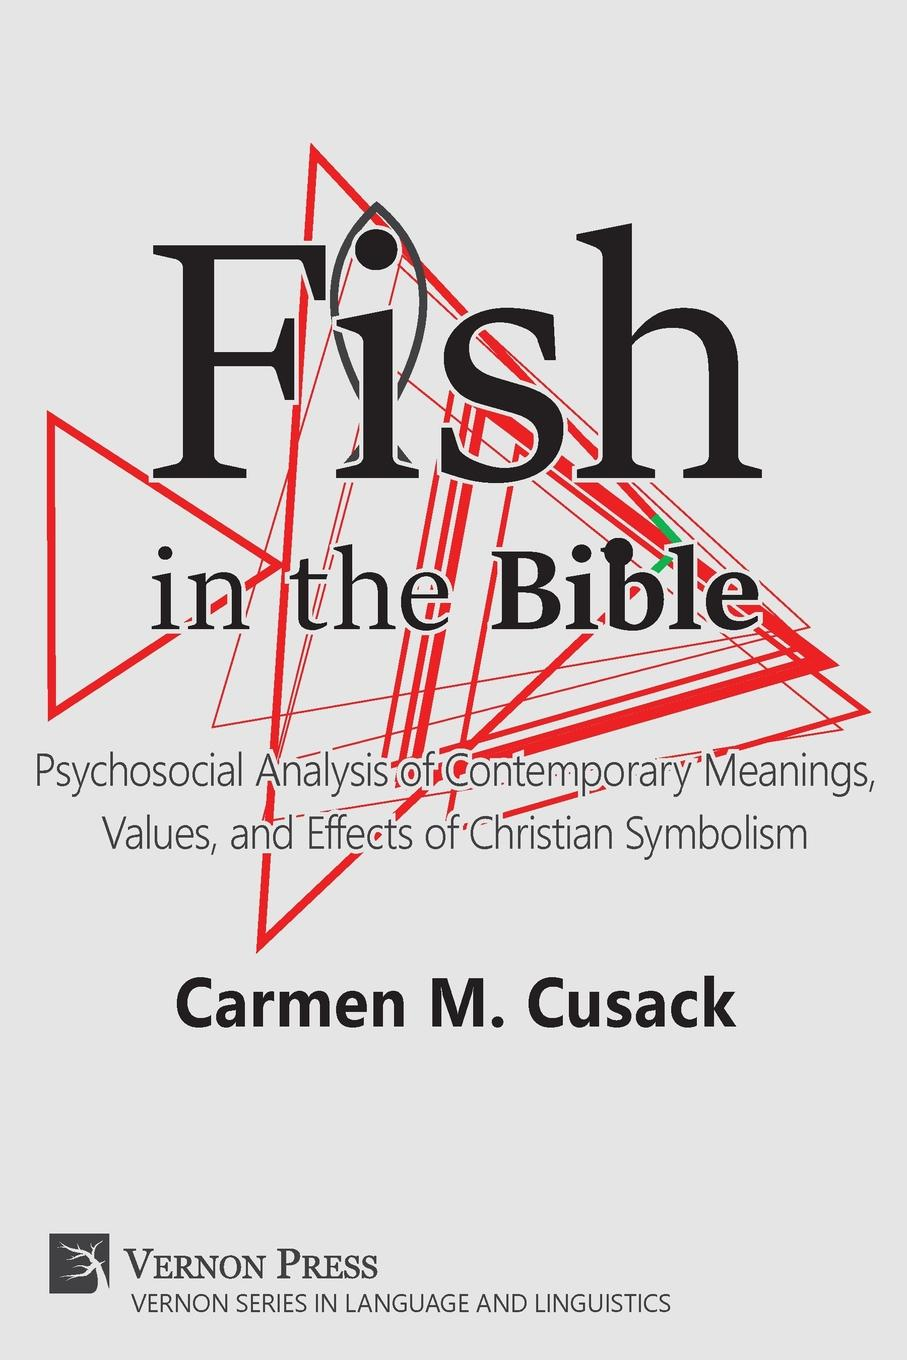 Carmen M Cusack Fish in the Bible. Psychosocial Analysis of Contemporary Meanings, Values, and Effects of Christian Symbolism